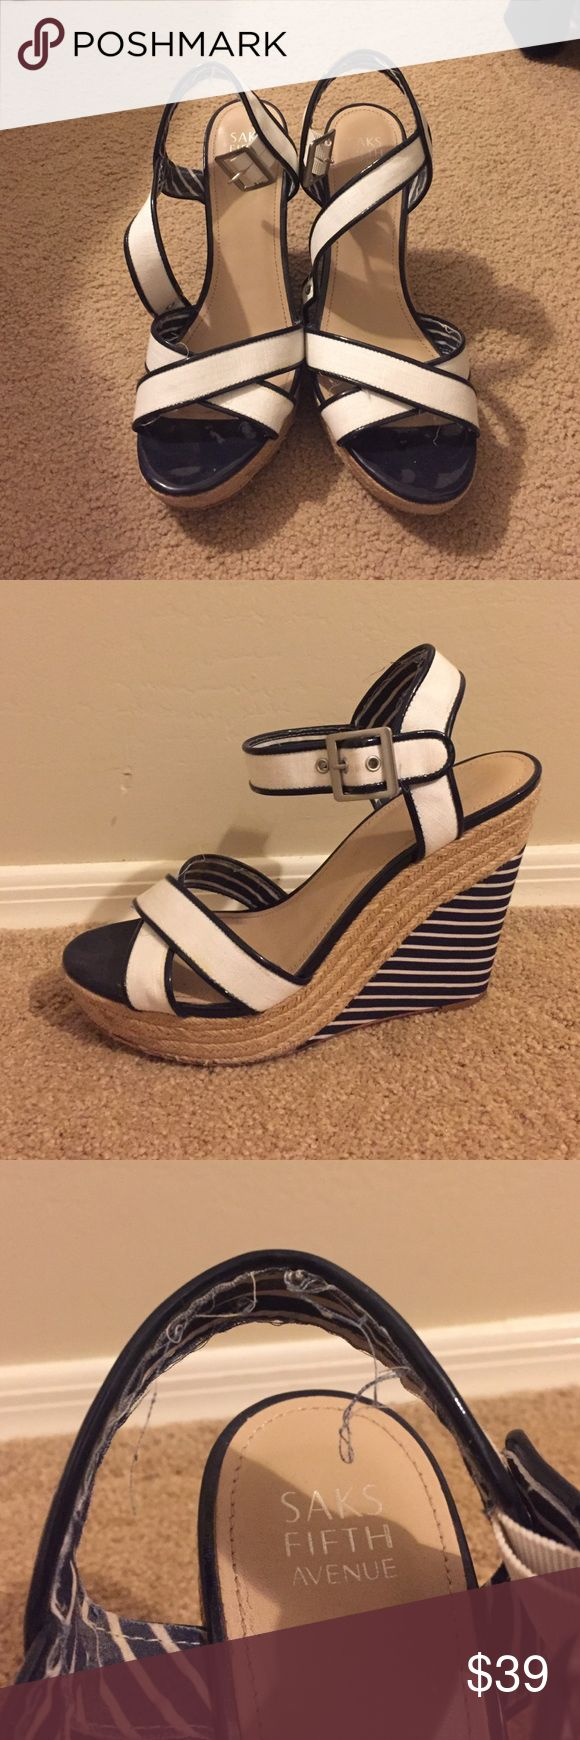 Saks Fifth Avenue Espadrille wedges Navy blue and white Espadrille wedges. I purchased them years ago but only wore them a couple times. The stitching on the fabric lining on the inside of the straps is shedding. (As pictured). I do have the original box if you are interested. Saks Fifth Avenue Shoes Espadrilles